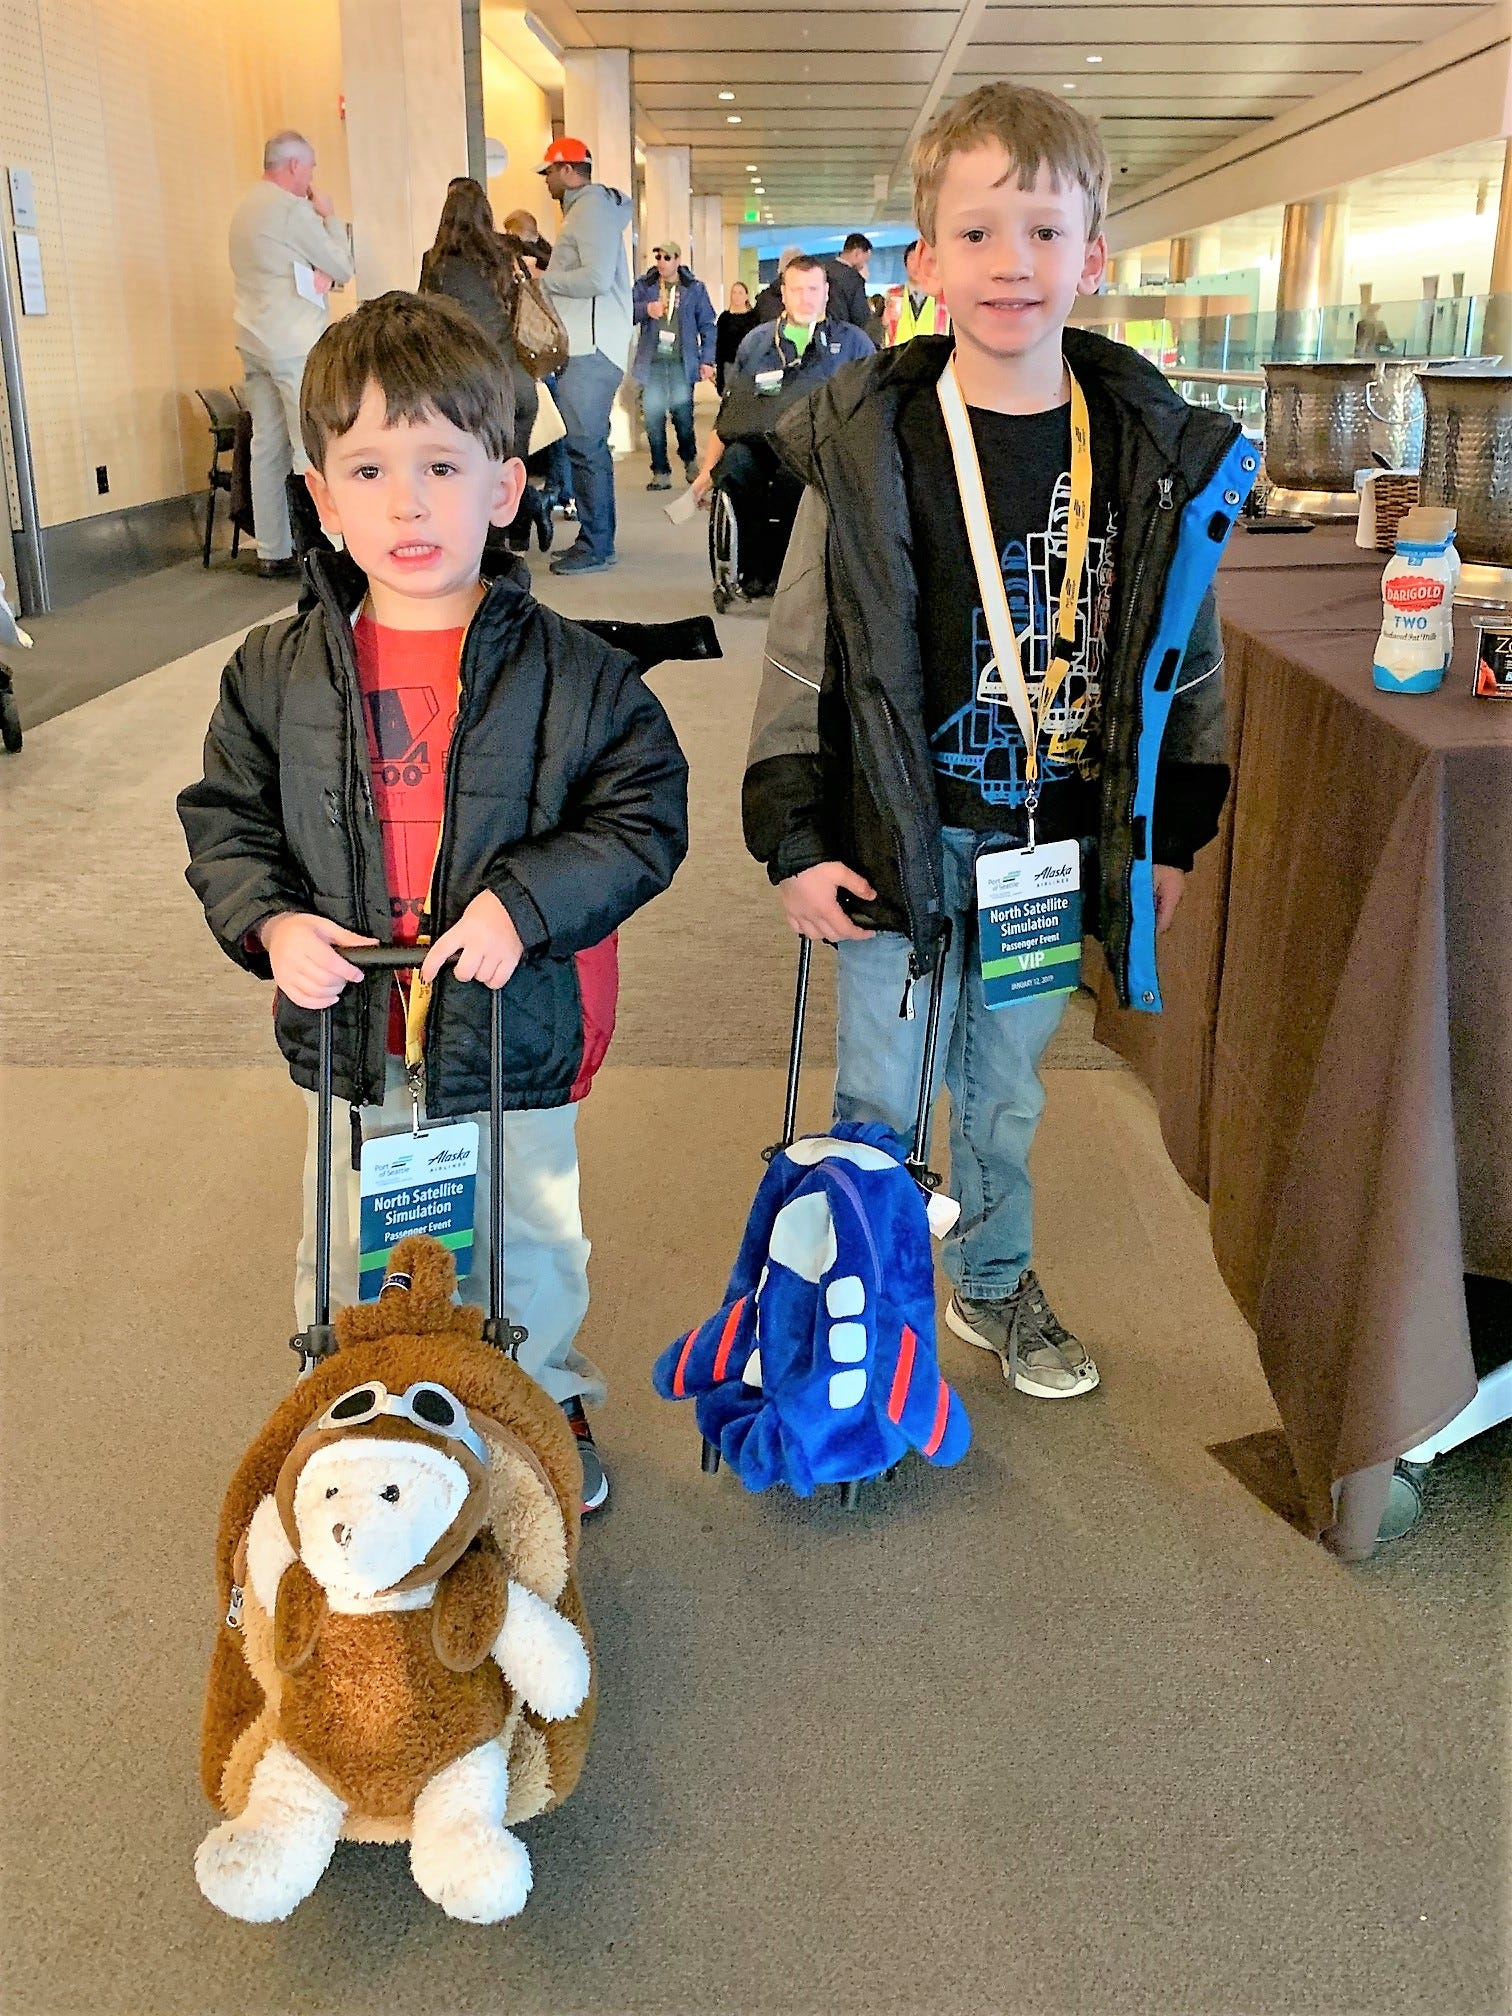 Ari and Micah Weinstein brought suitcases to help test the expanded North Satellite Terminal at Seattle-Tacoma International Airport on Jan. 12, 2019.